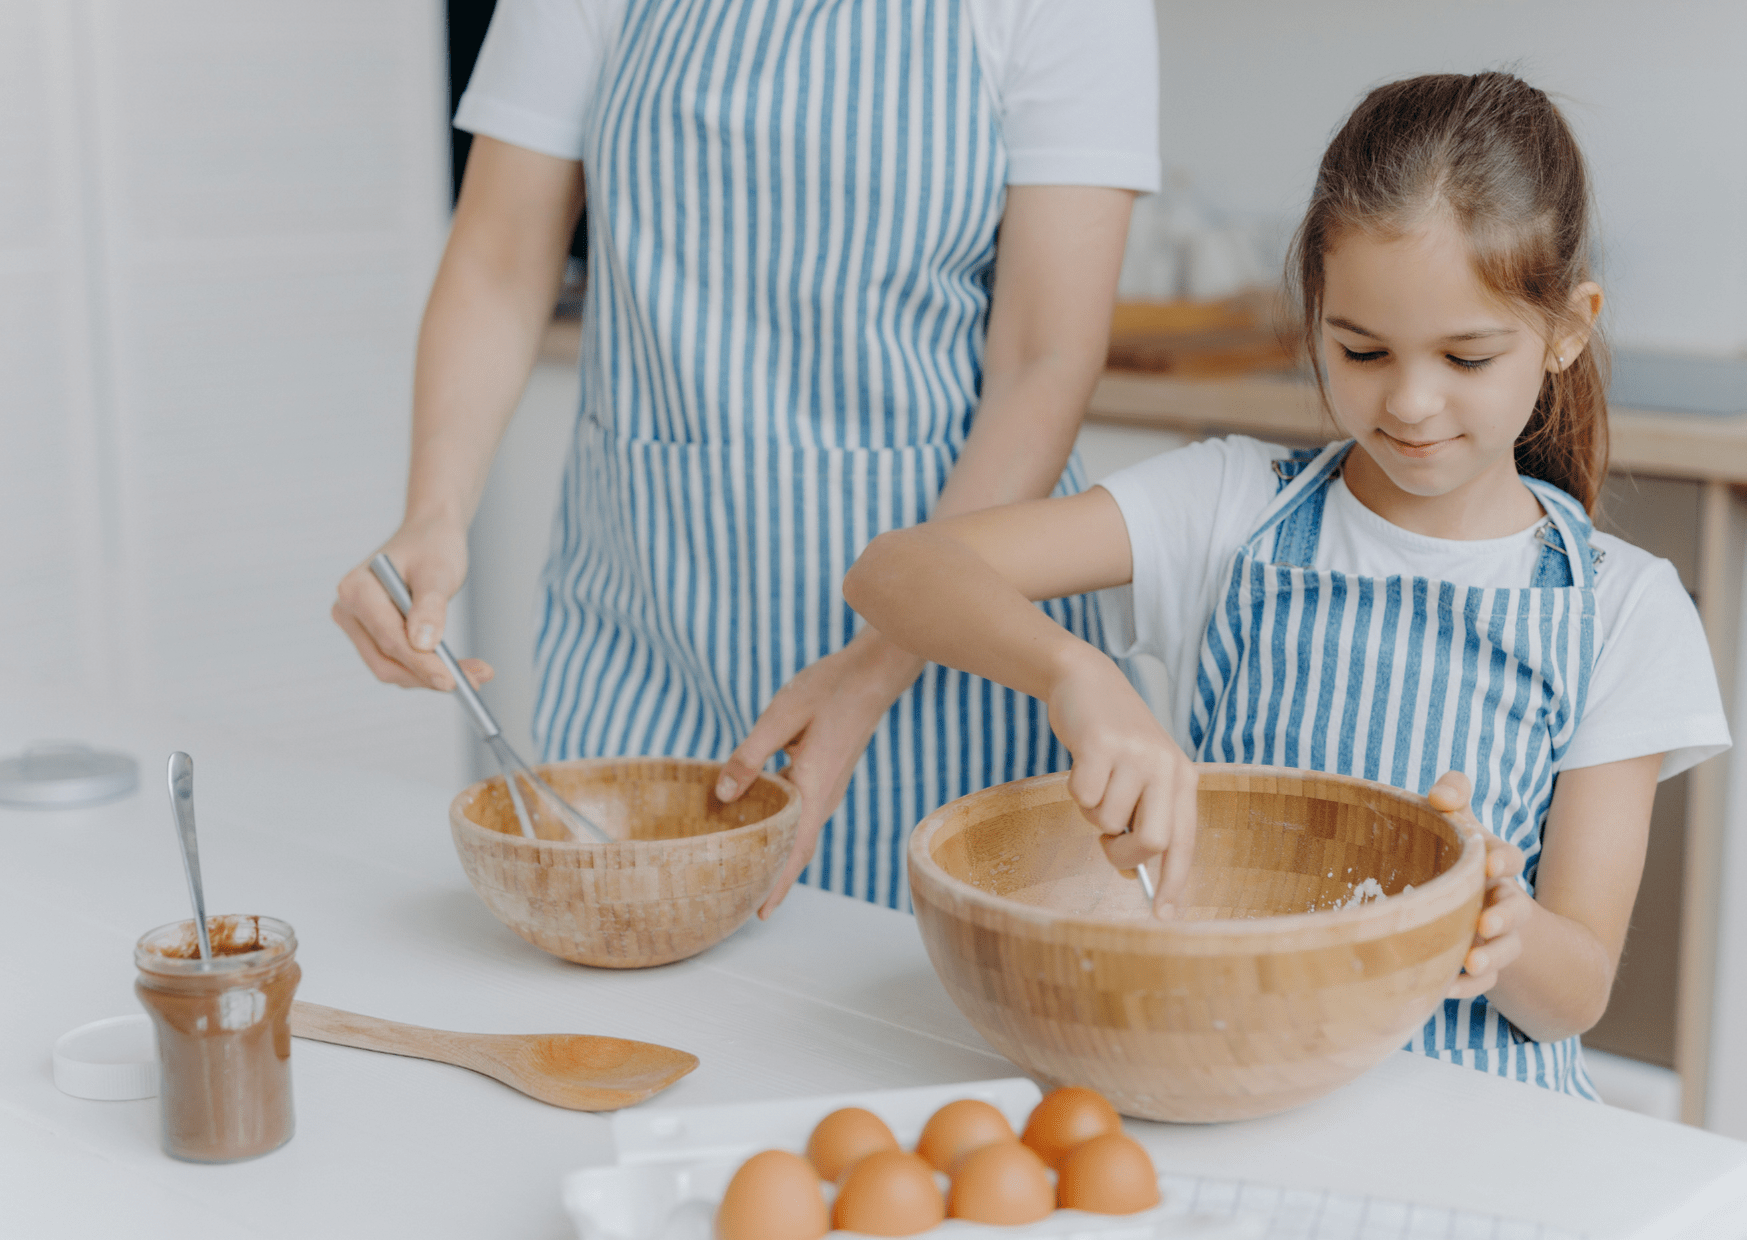 cooking lessons for kids